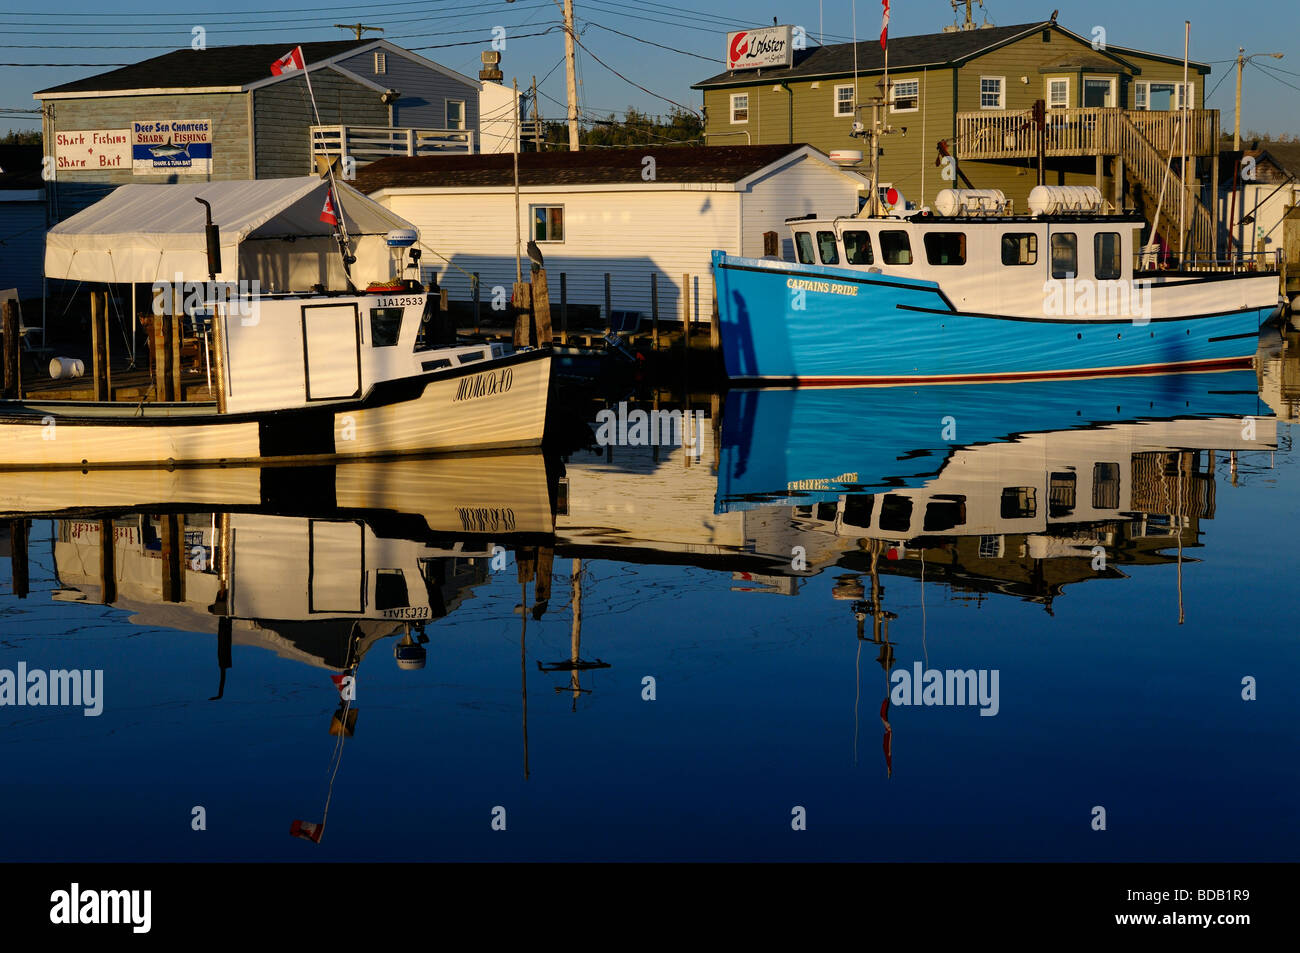 Deep sea shark charter boats on calm morning water on blue sky day at Fishermans Cove Eastern Passage Halifax Nova - Stock Image